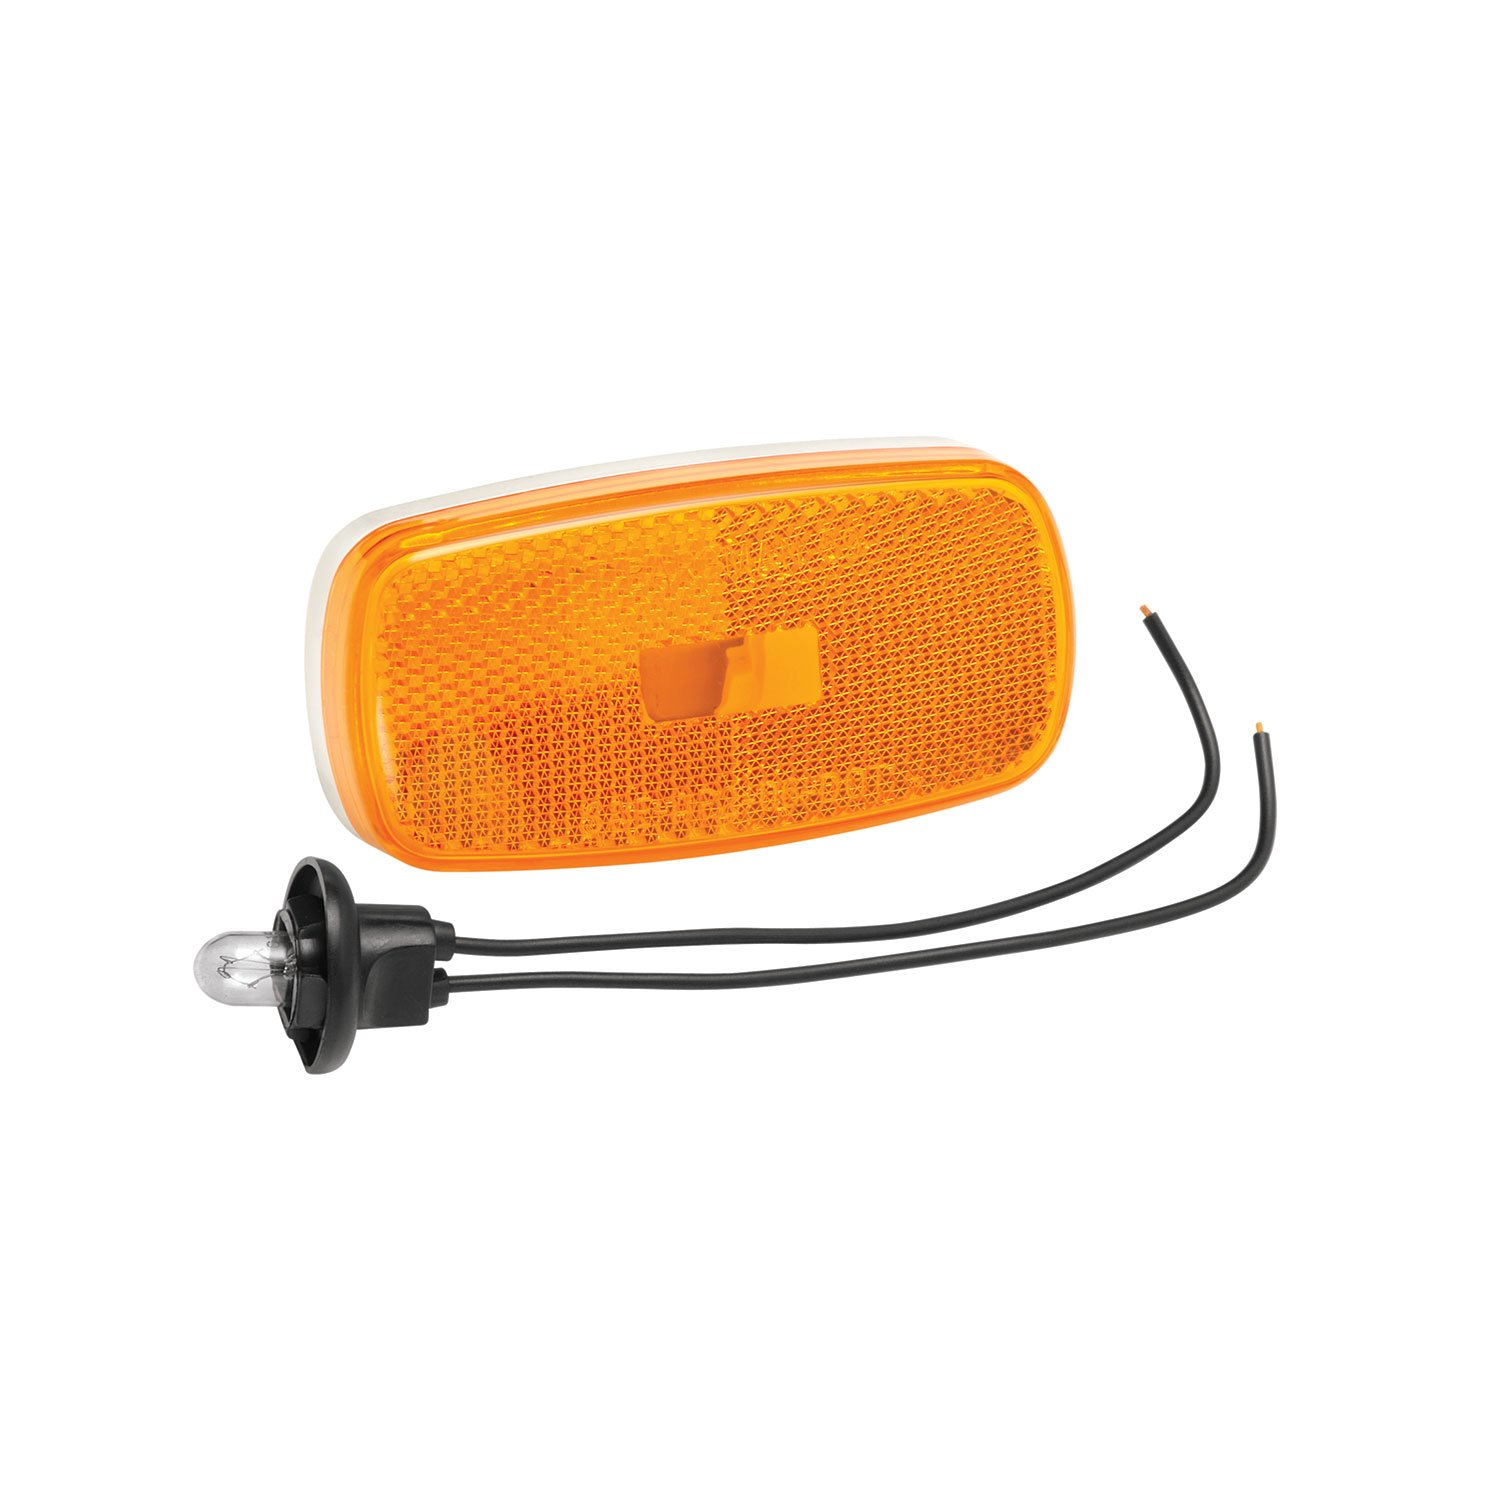 Bargman 31-59-002 Clearance/Side Marker Light (with White Base - Amber)